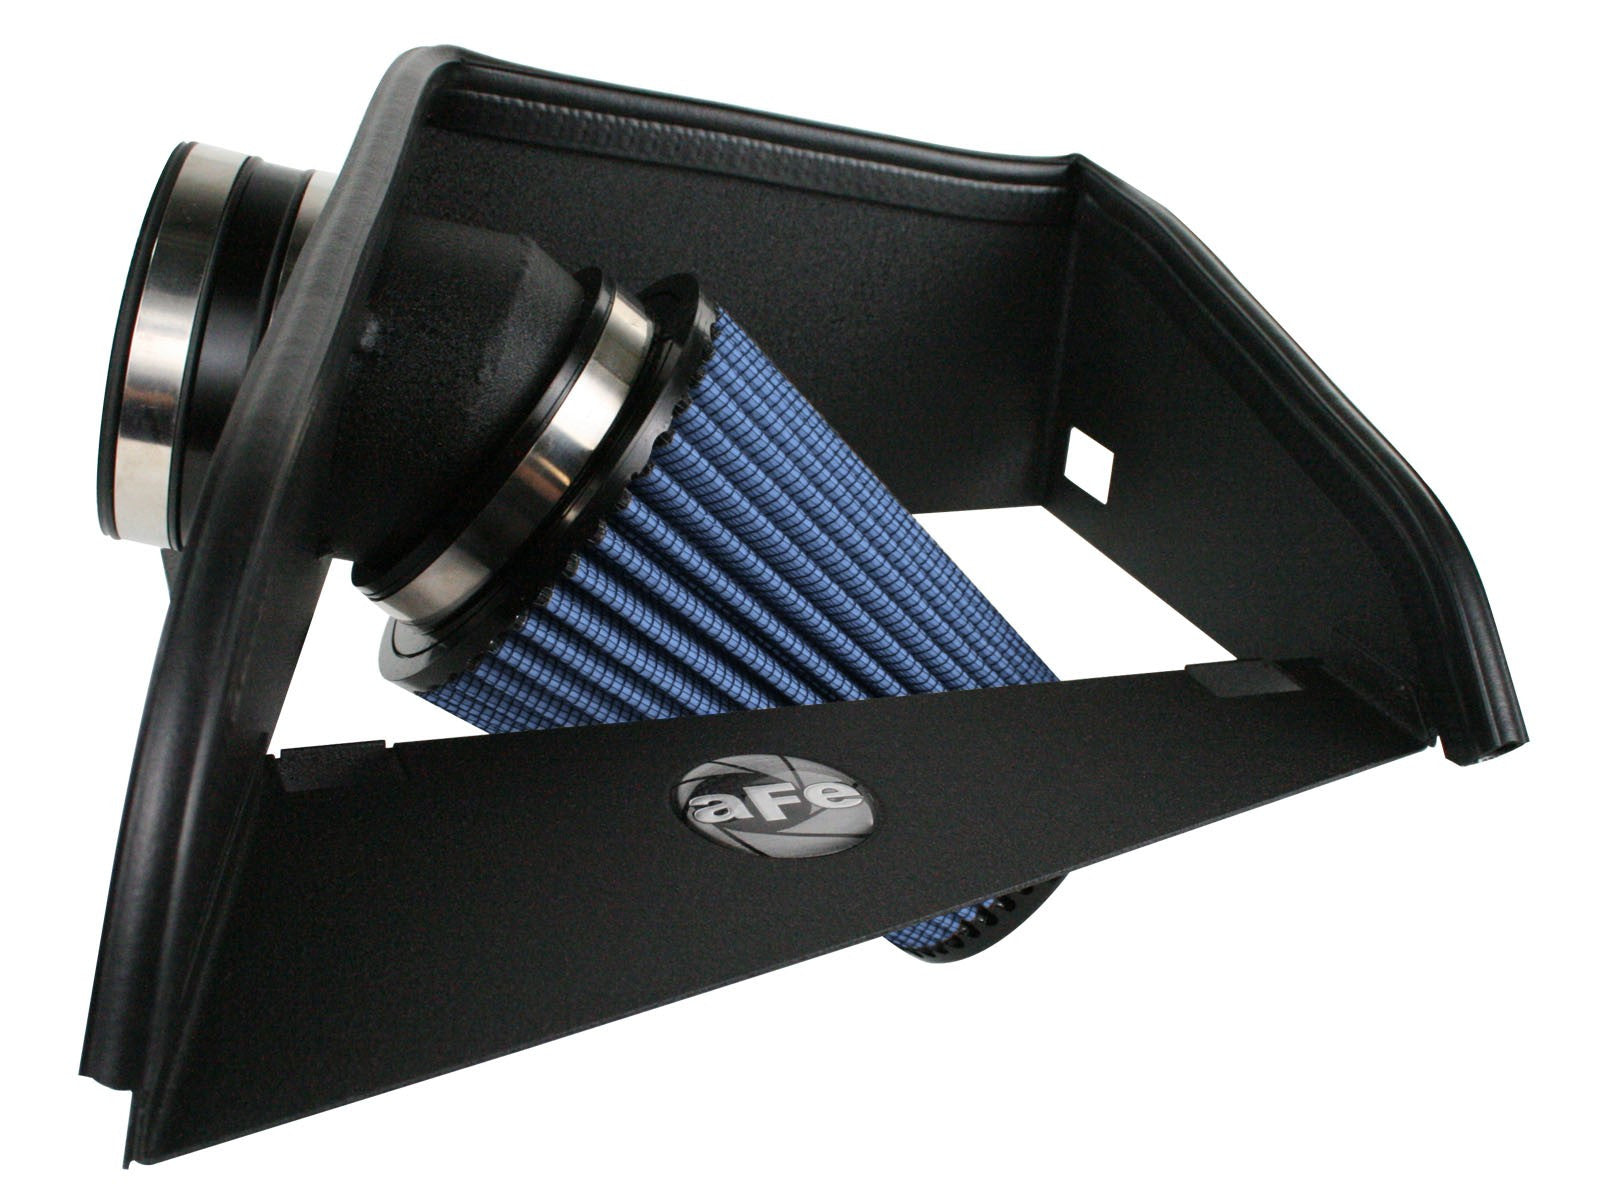 aFe POWER E53 X5 3.0L Magnum FORCE Stage-1 Pro 5R Cold Air Intake System - Bimmer Performance Center